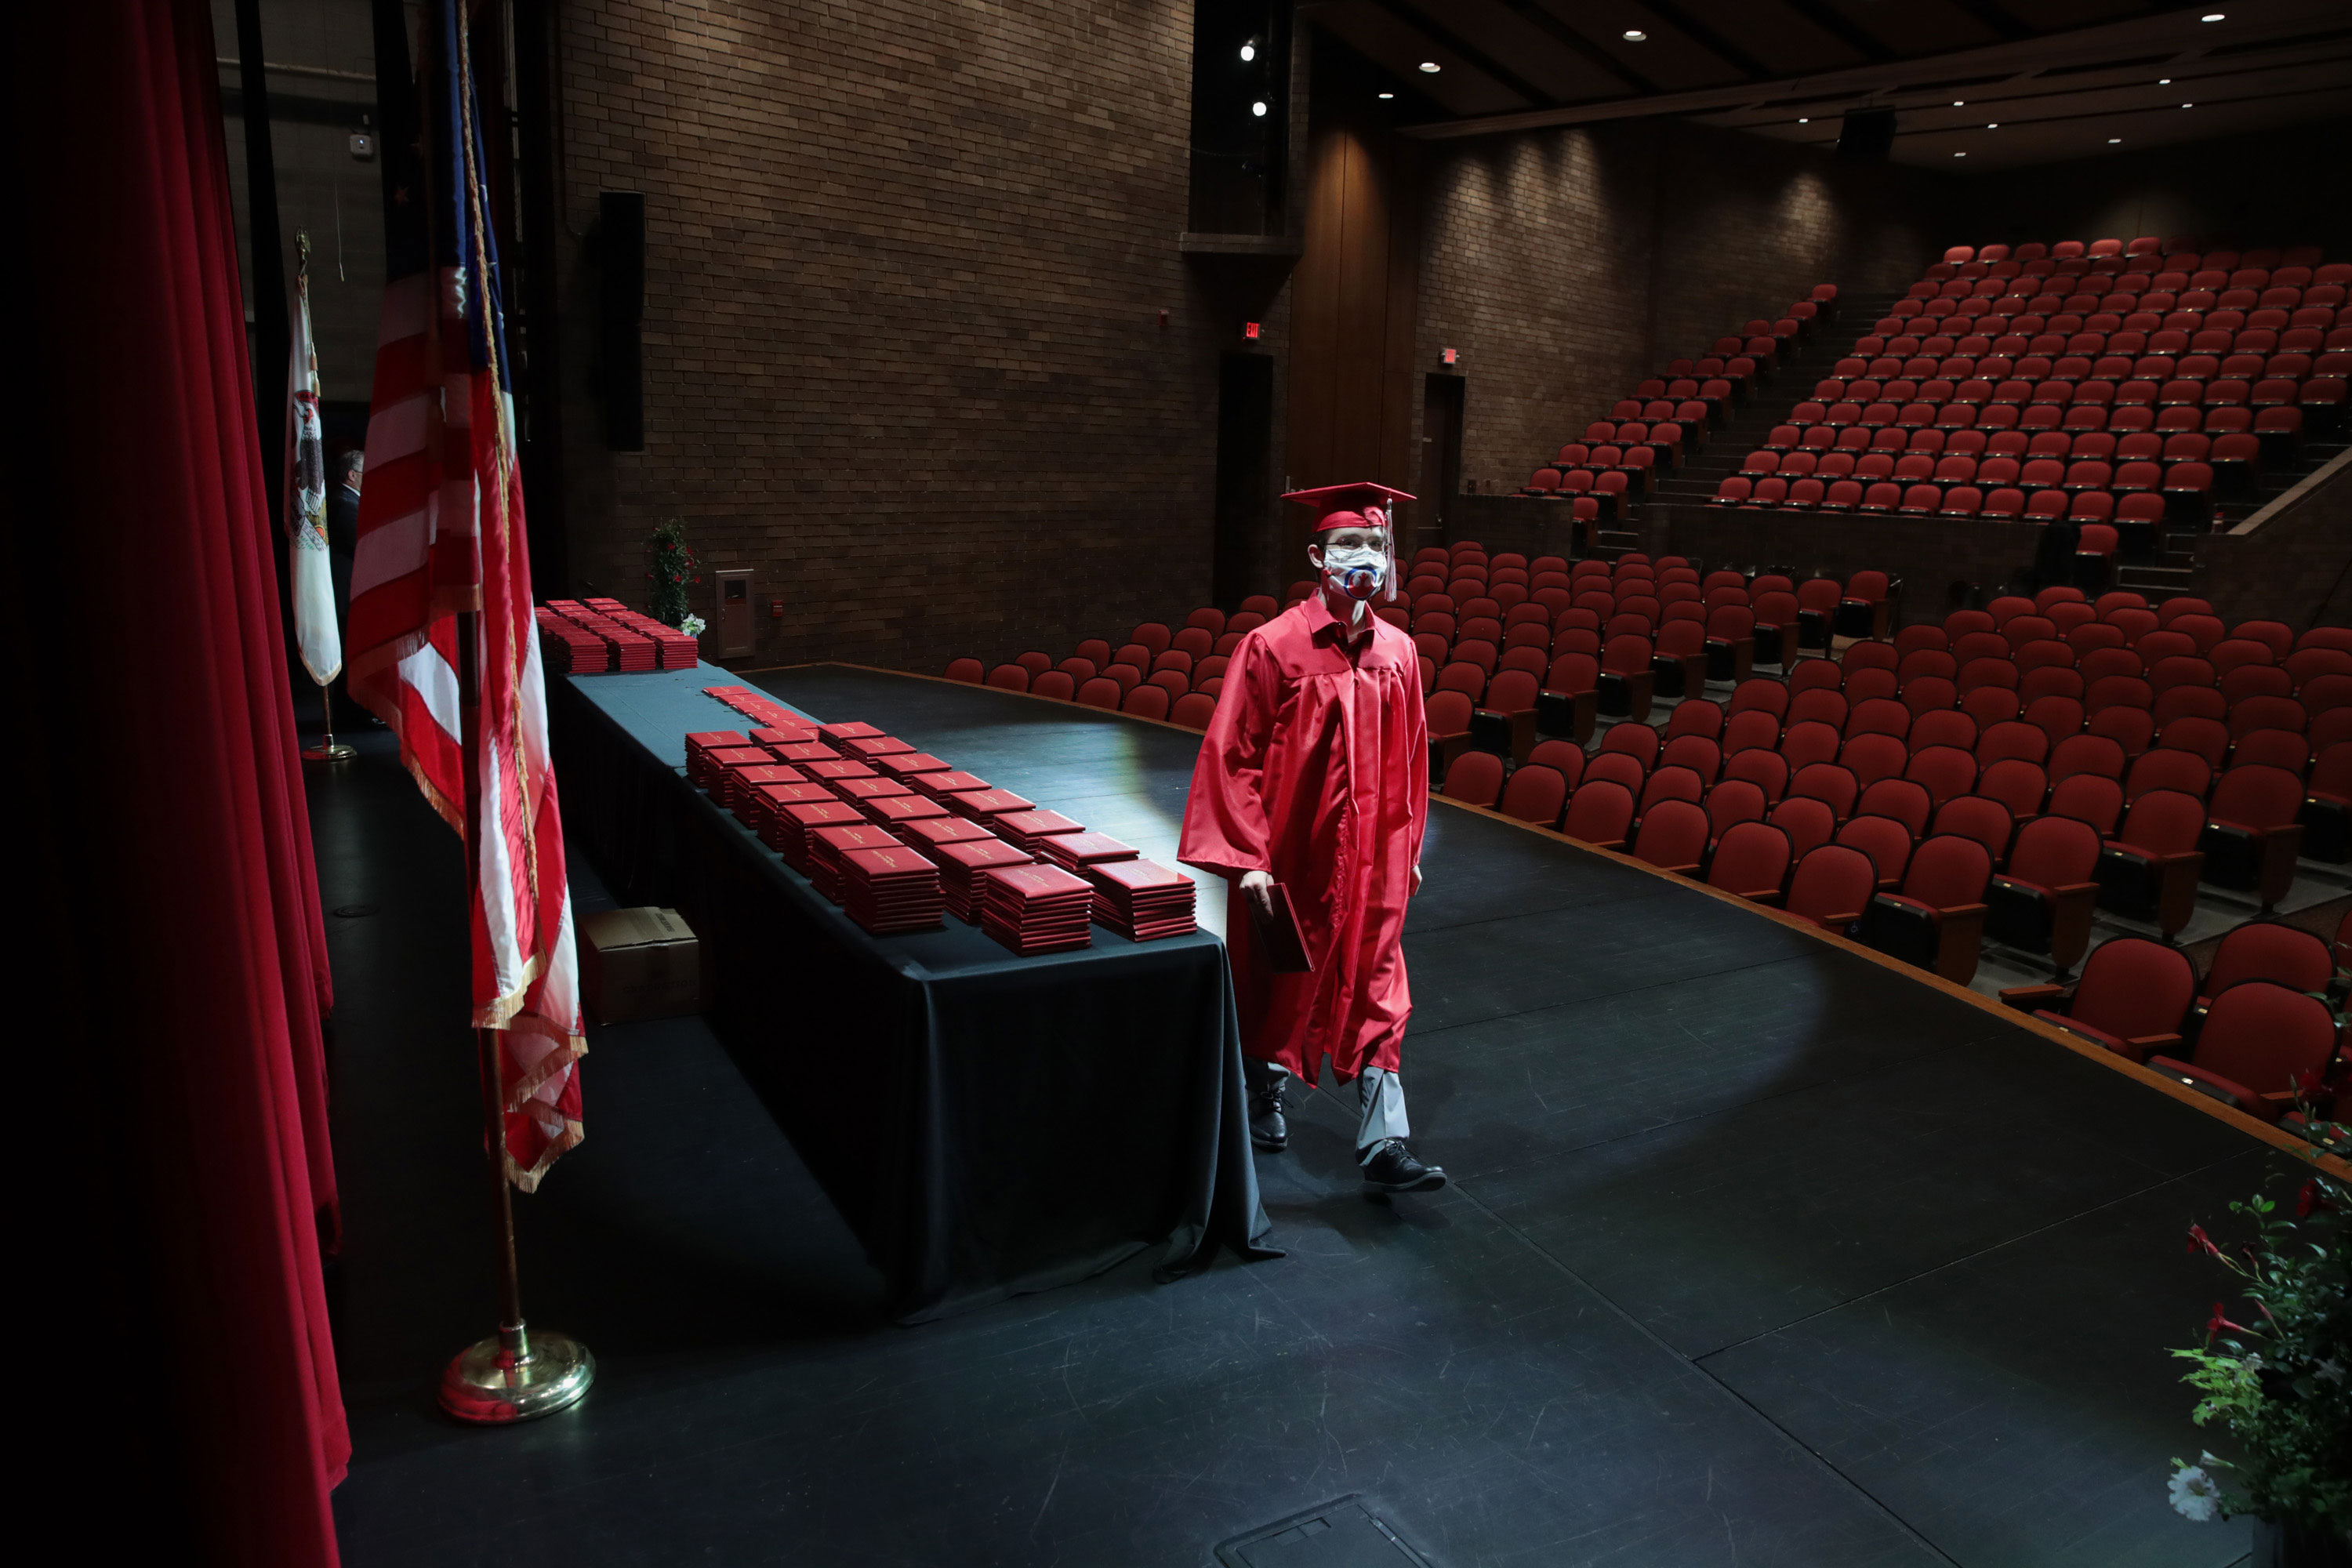 A student picks up his diploma during a graduation ceremony at Bradley-Bourbonnais Community High School on May 6 in Bradley, Illinois.